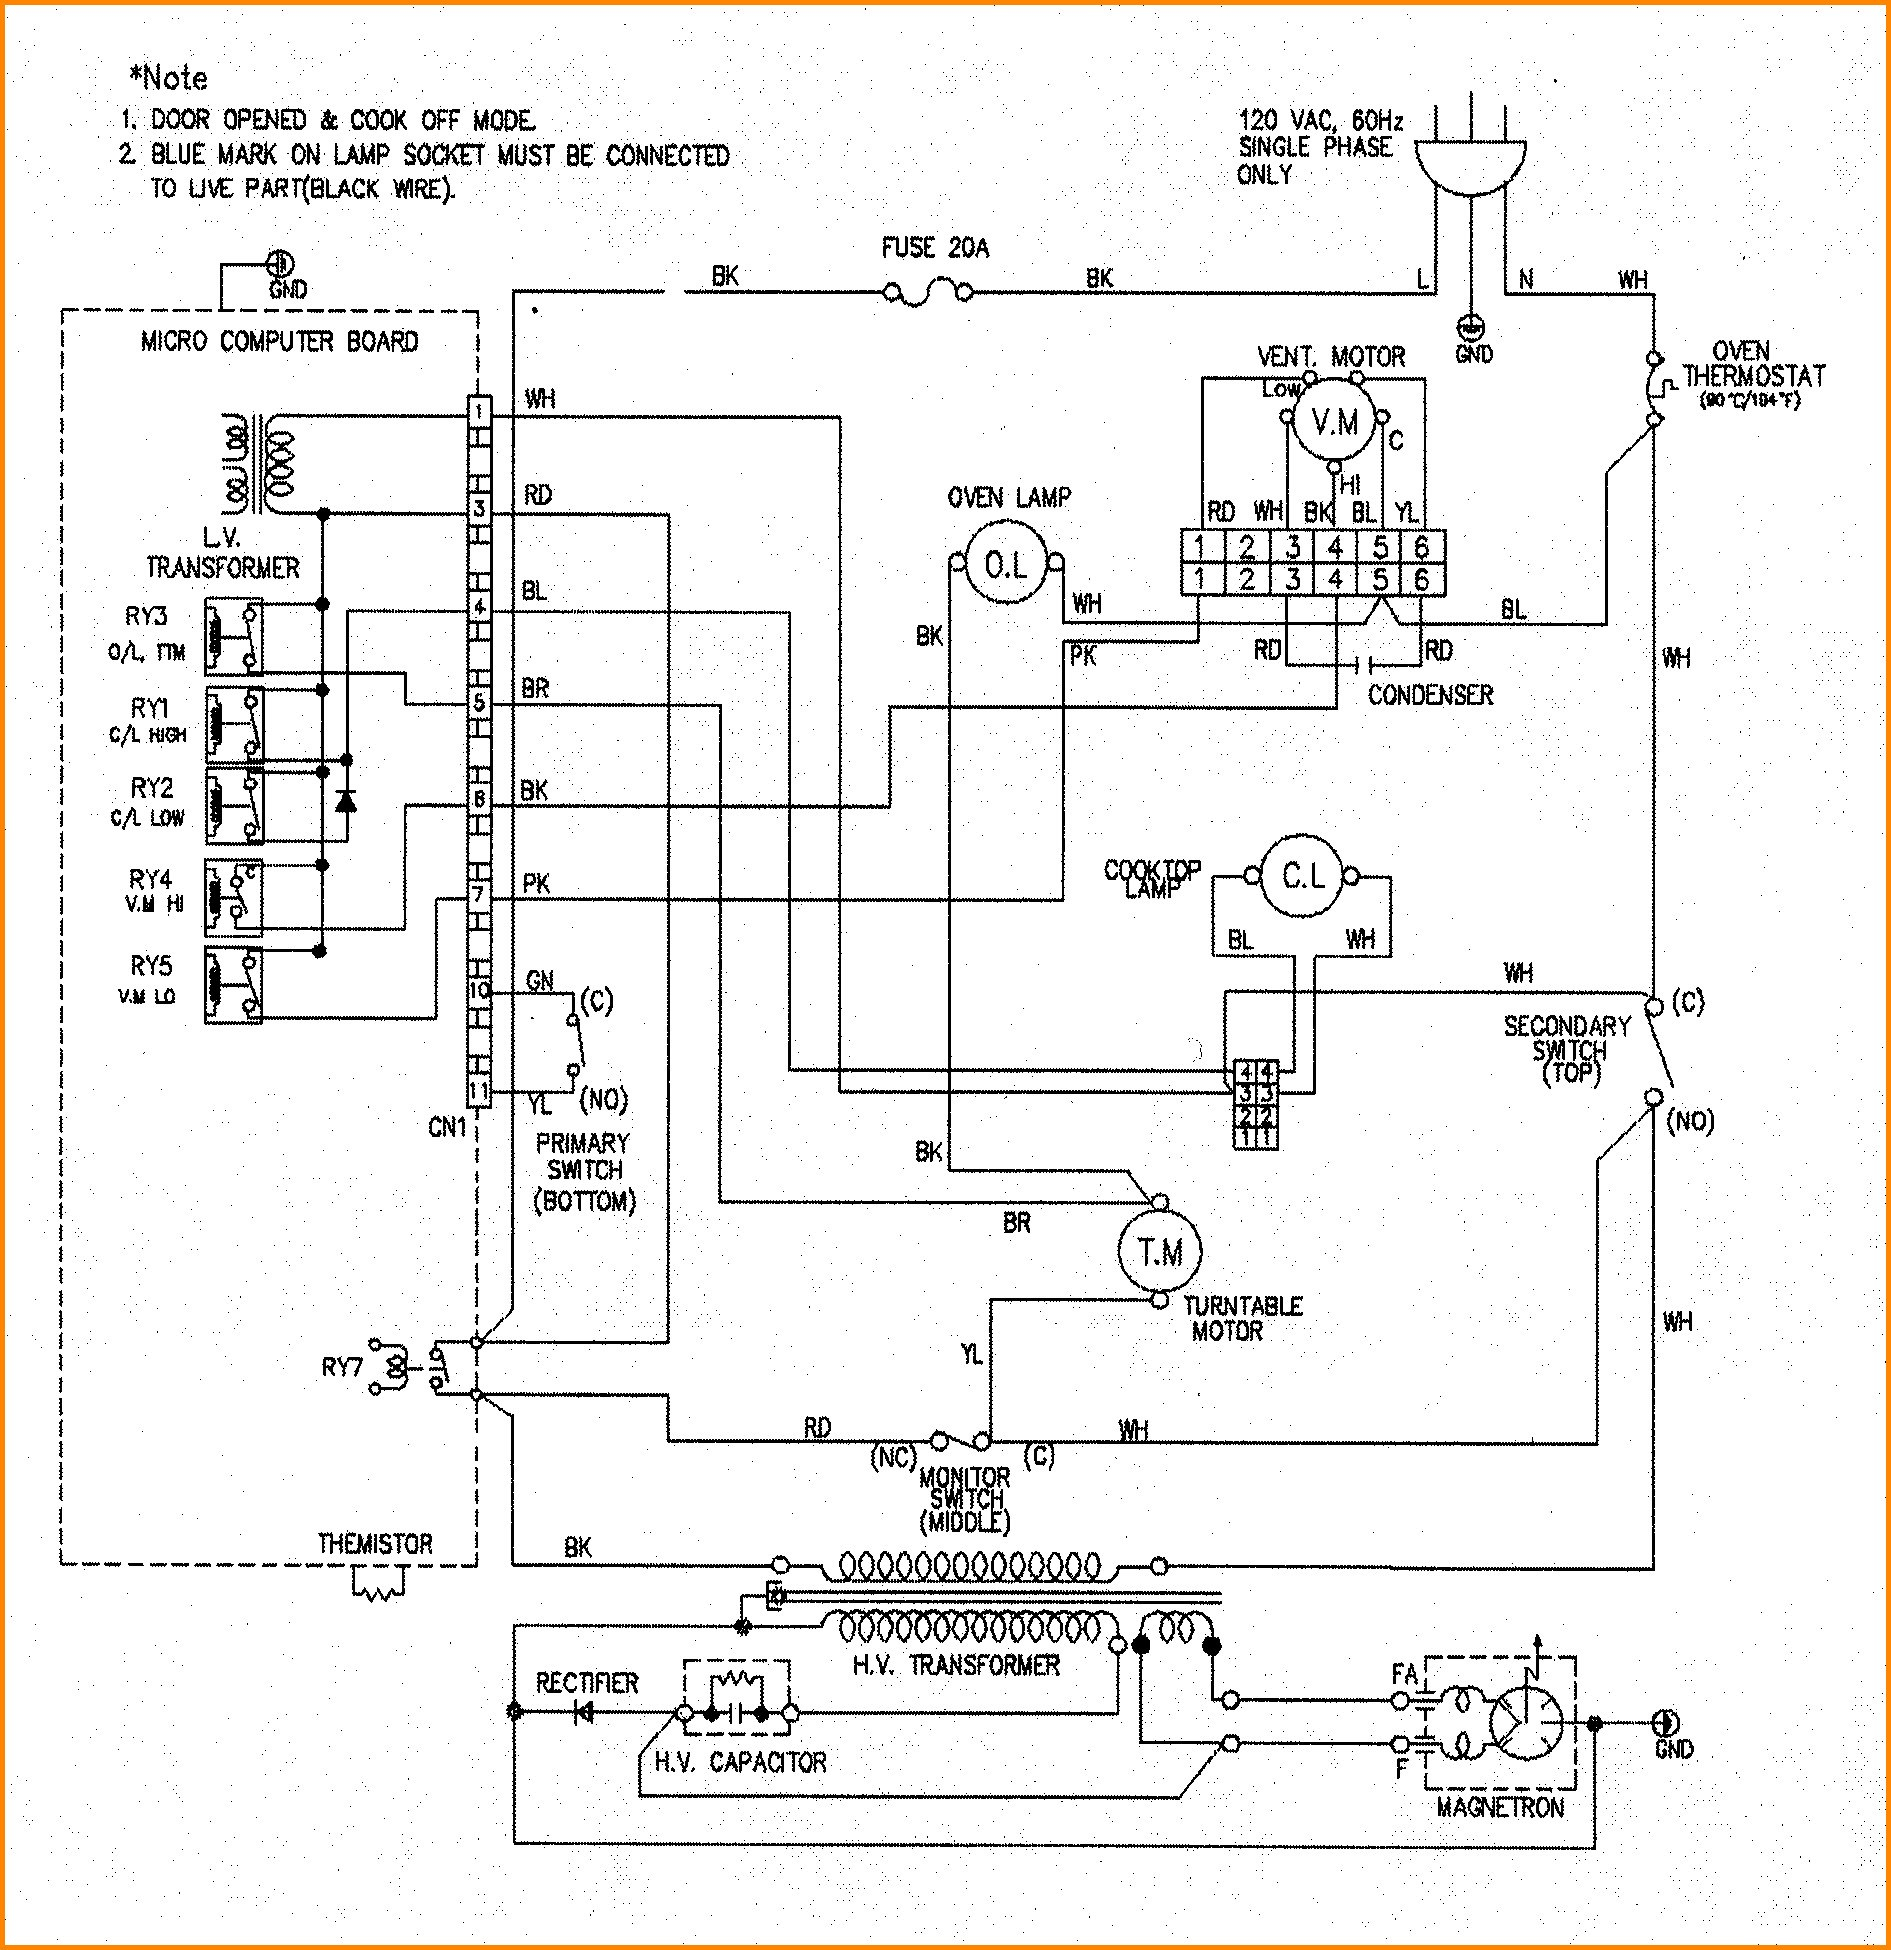 Ge Oven Thermostat Wiring - Wiring Diagrams Wiring Diagram Satchwell Thermostat on refrigerator schematic diagram, baseboard heat diagram, thermostat schematic diagram, thermostat cable, thermostat wire, thermostat symbol, circuit diagram, air conditioning diagram, thermostat housing, thermostat installation, thermostat white-rodgers wiringheatpump, thermostat manual, thermostat switch, honeywell thermostat diagram, wall heater thermostat diagram, thermostat cover, thermostat clip art, controls for gas valve diagram, thermostat troubleshooting,